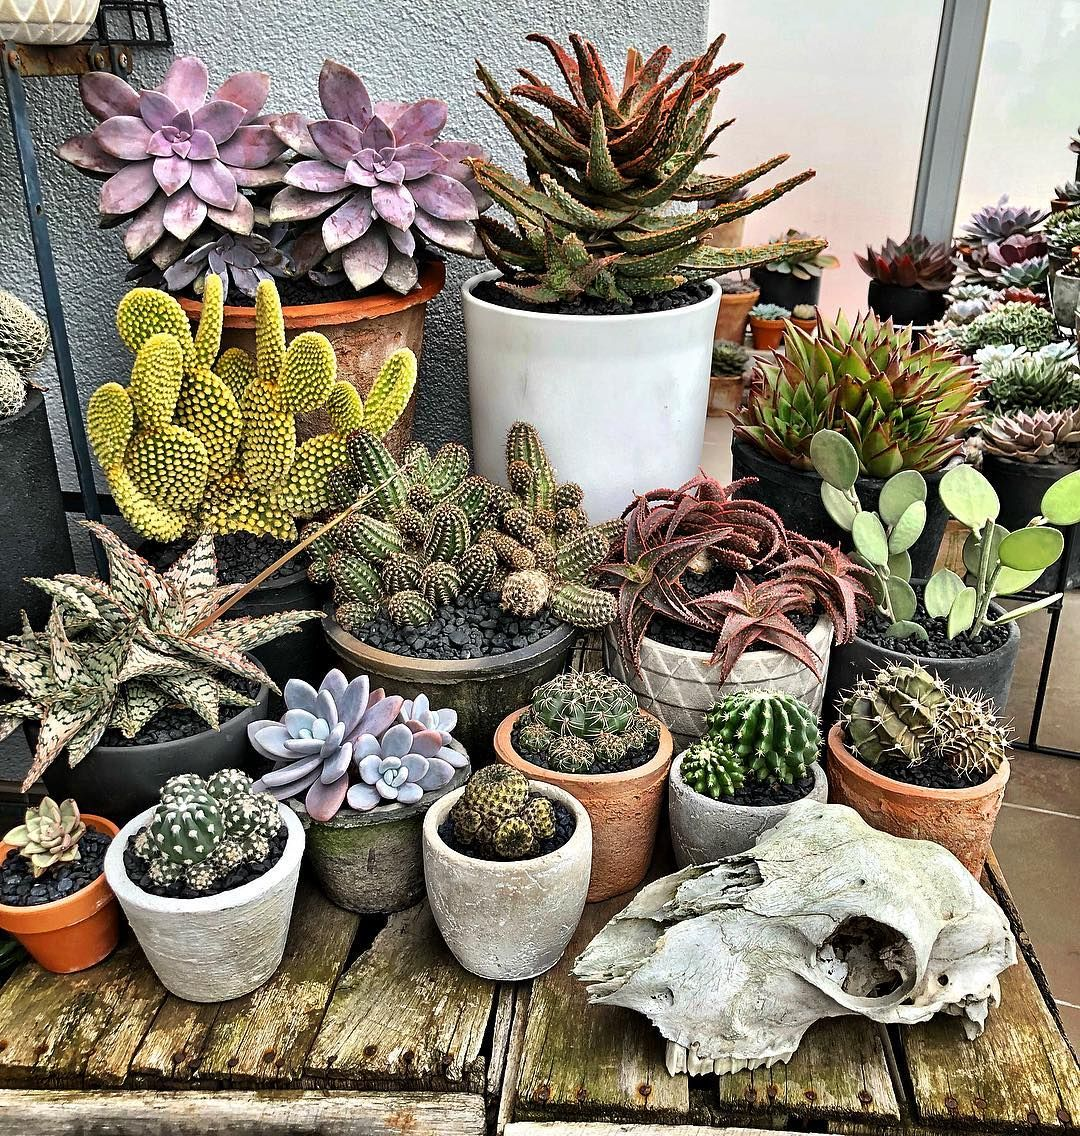 Pin by gem gossip on home decor pinterest earthy cacti and feelings